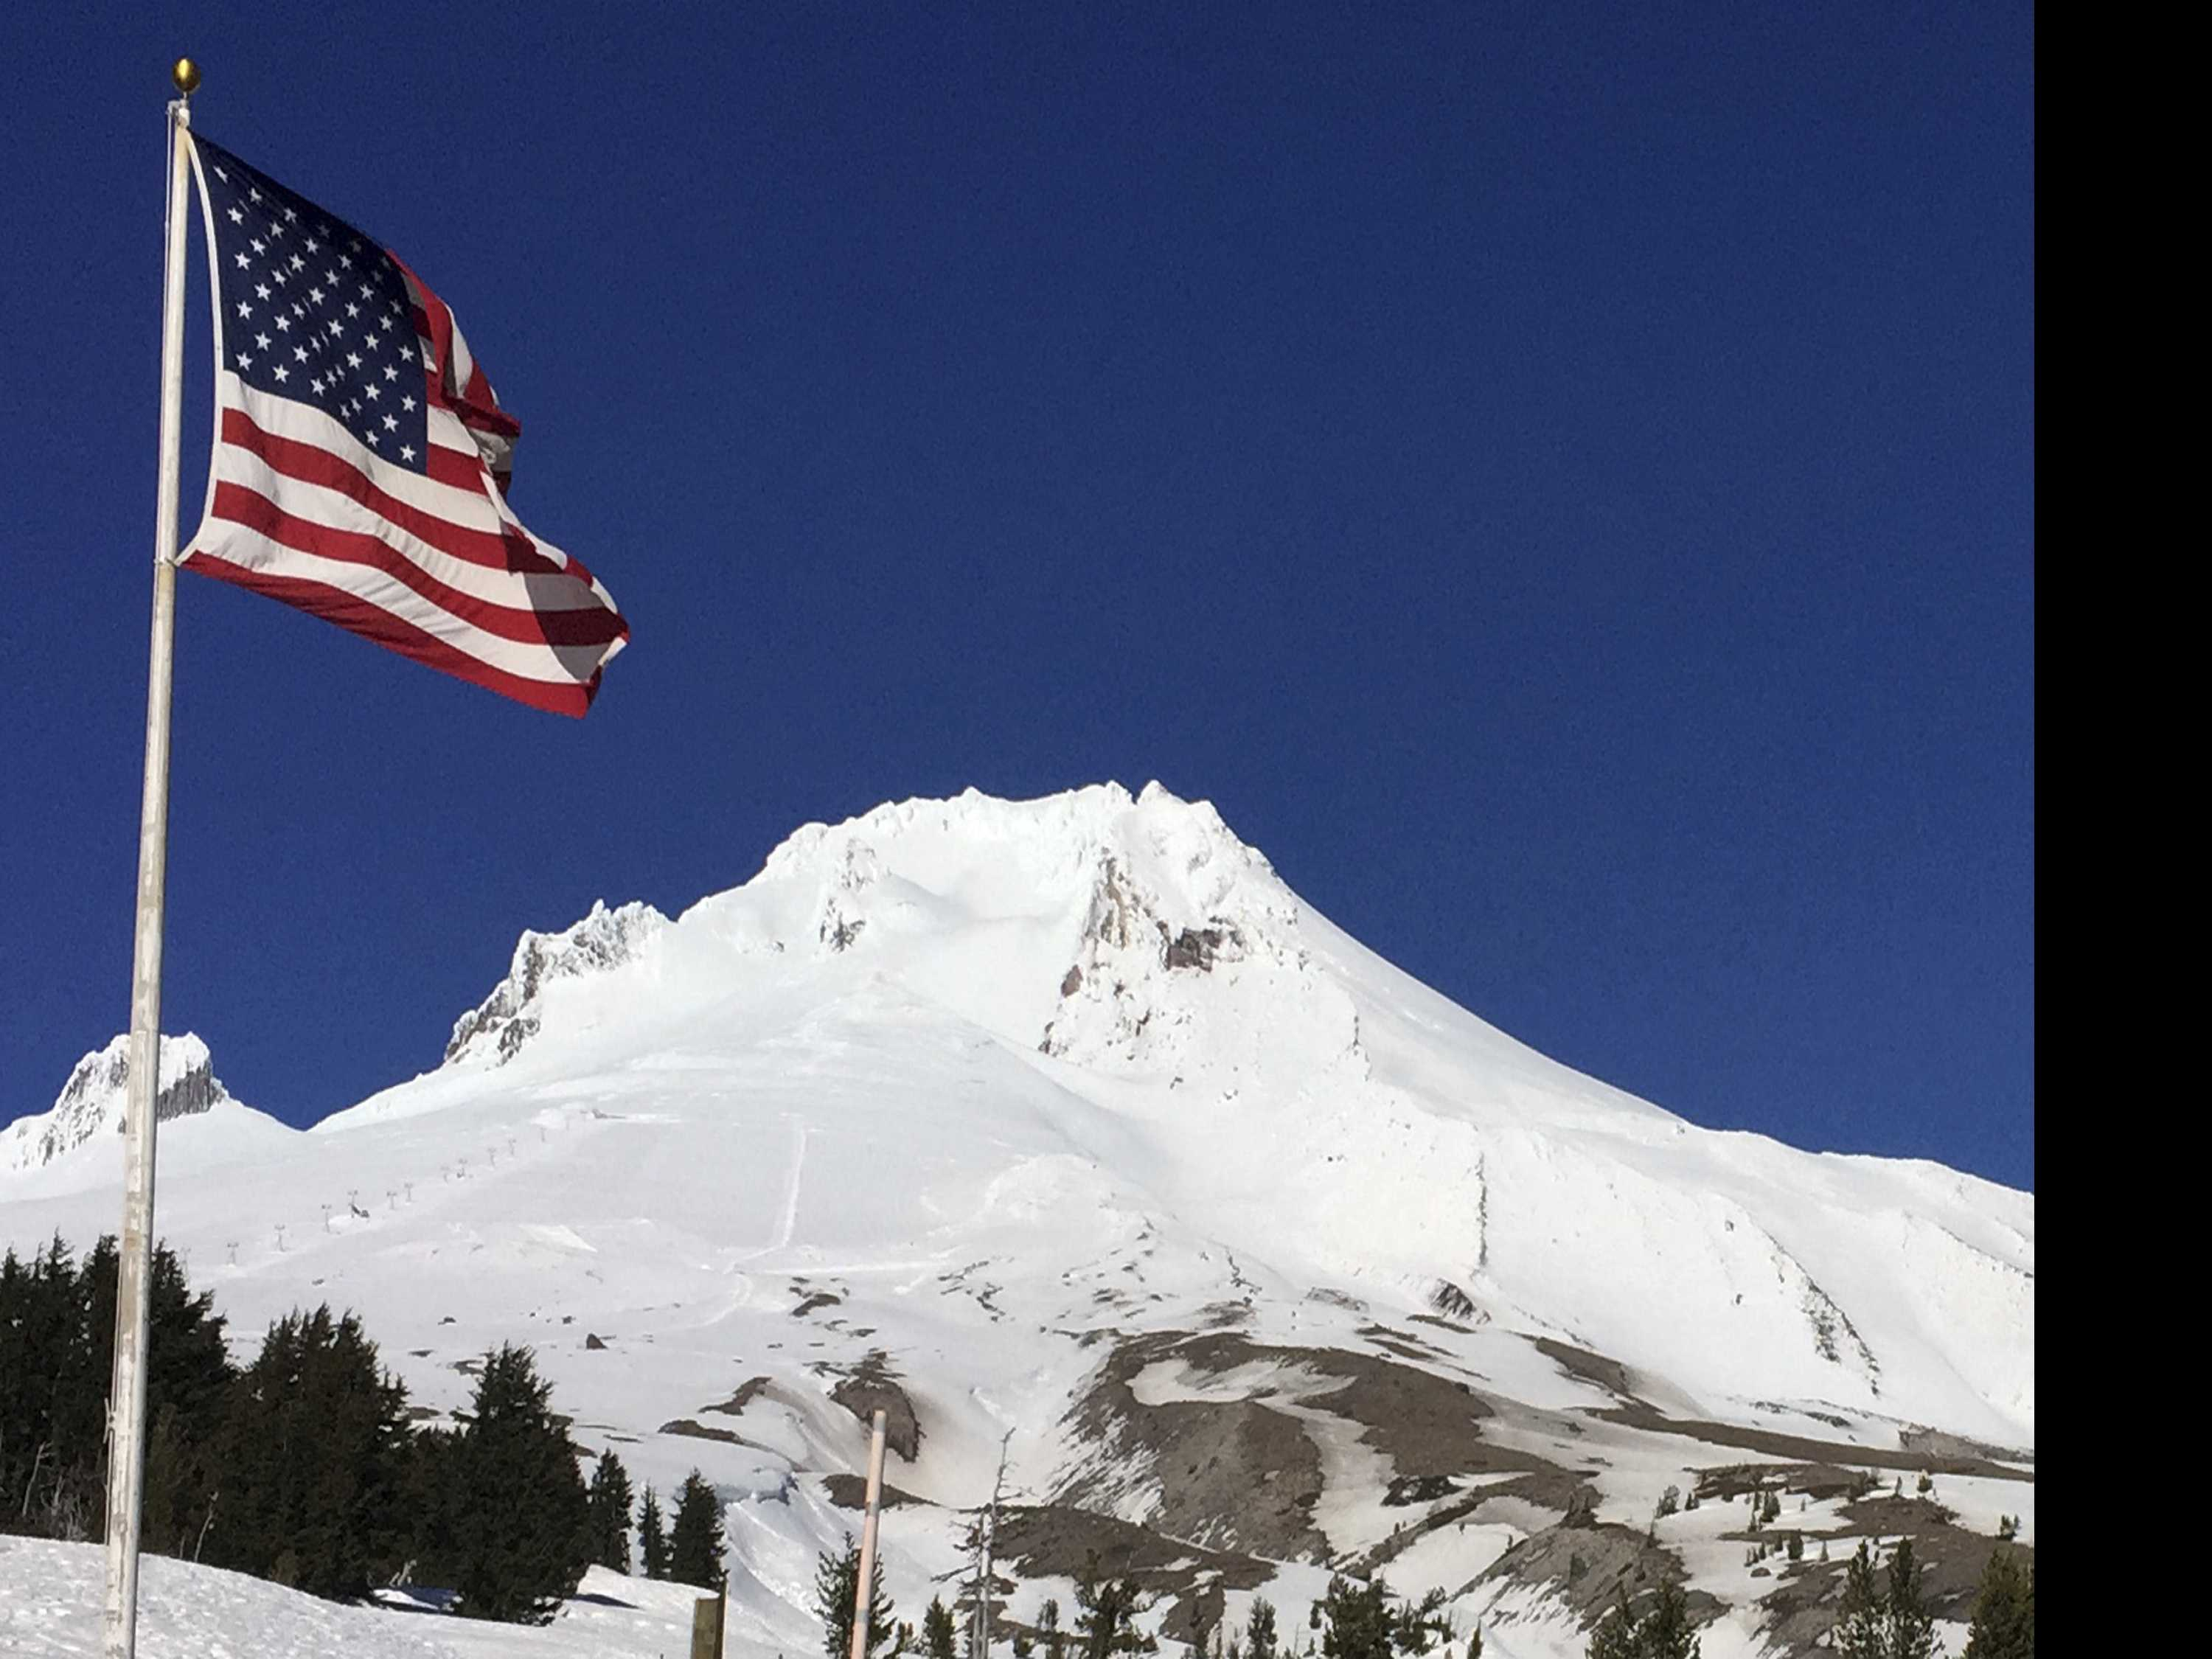 Terror, Heroism Revealed In Oregon Climbing Death 911 Calls